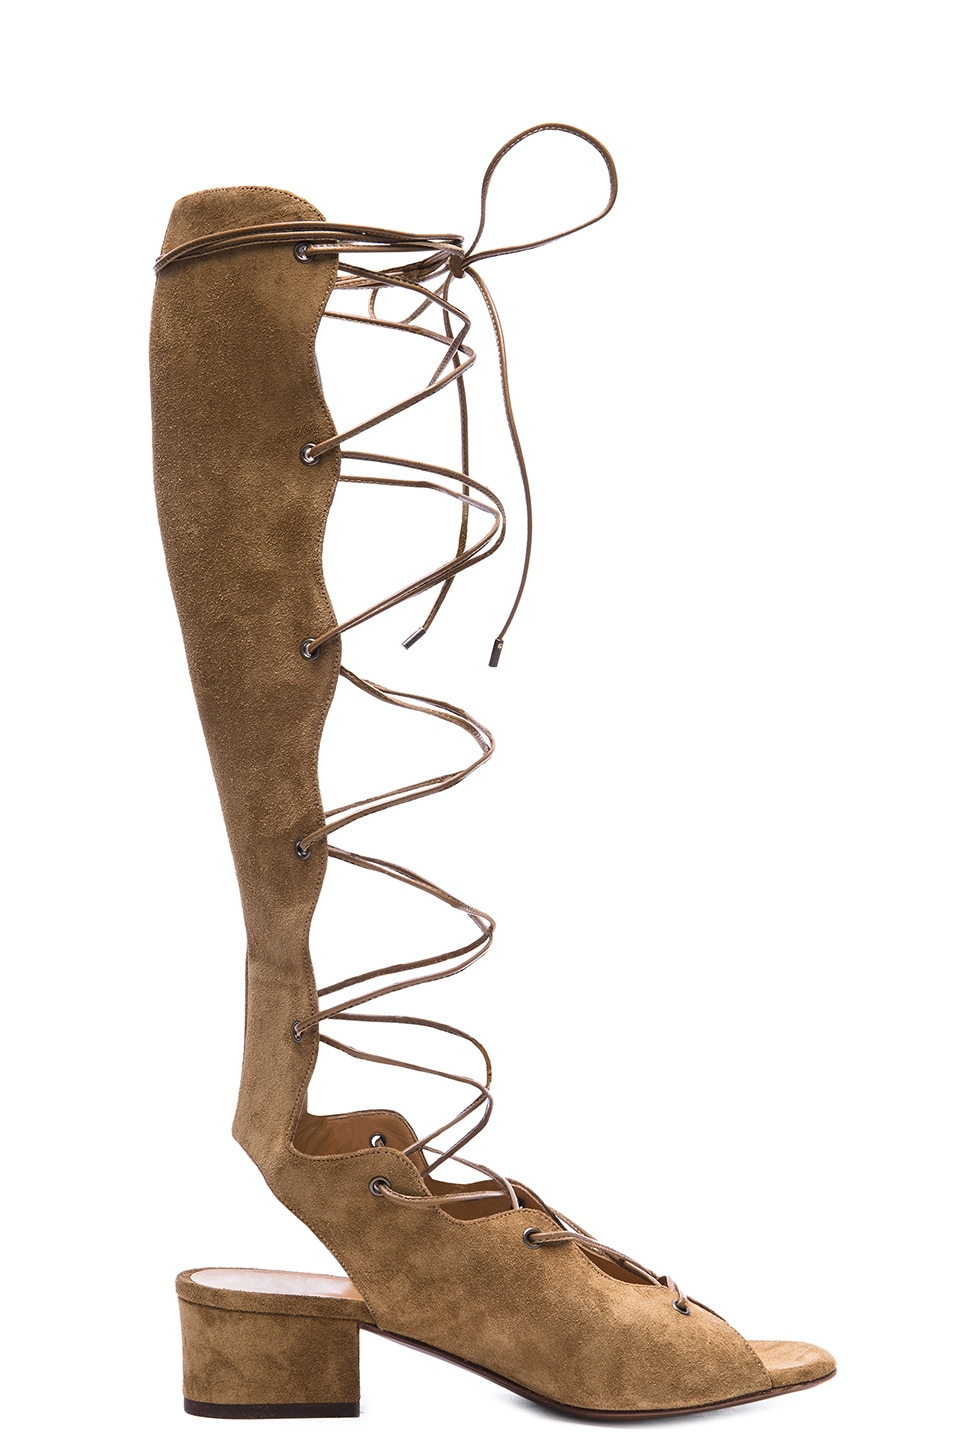 e70b8f73ff1 Image 1 of Saint Laurent Babies Suede Lace Up Gladiator Sandals in Tan